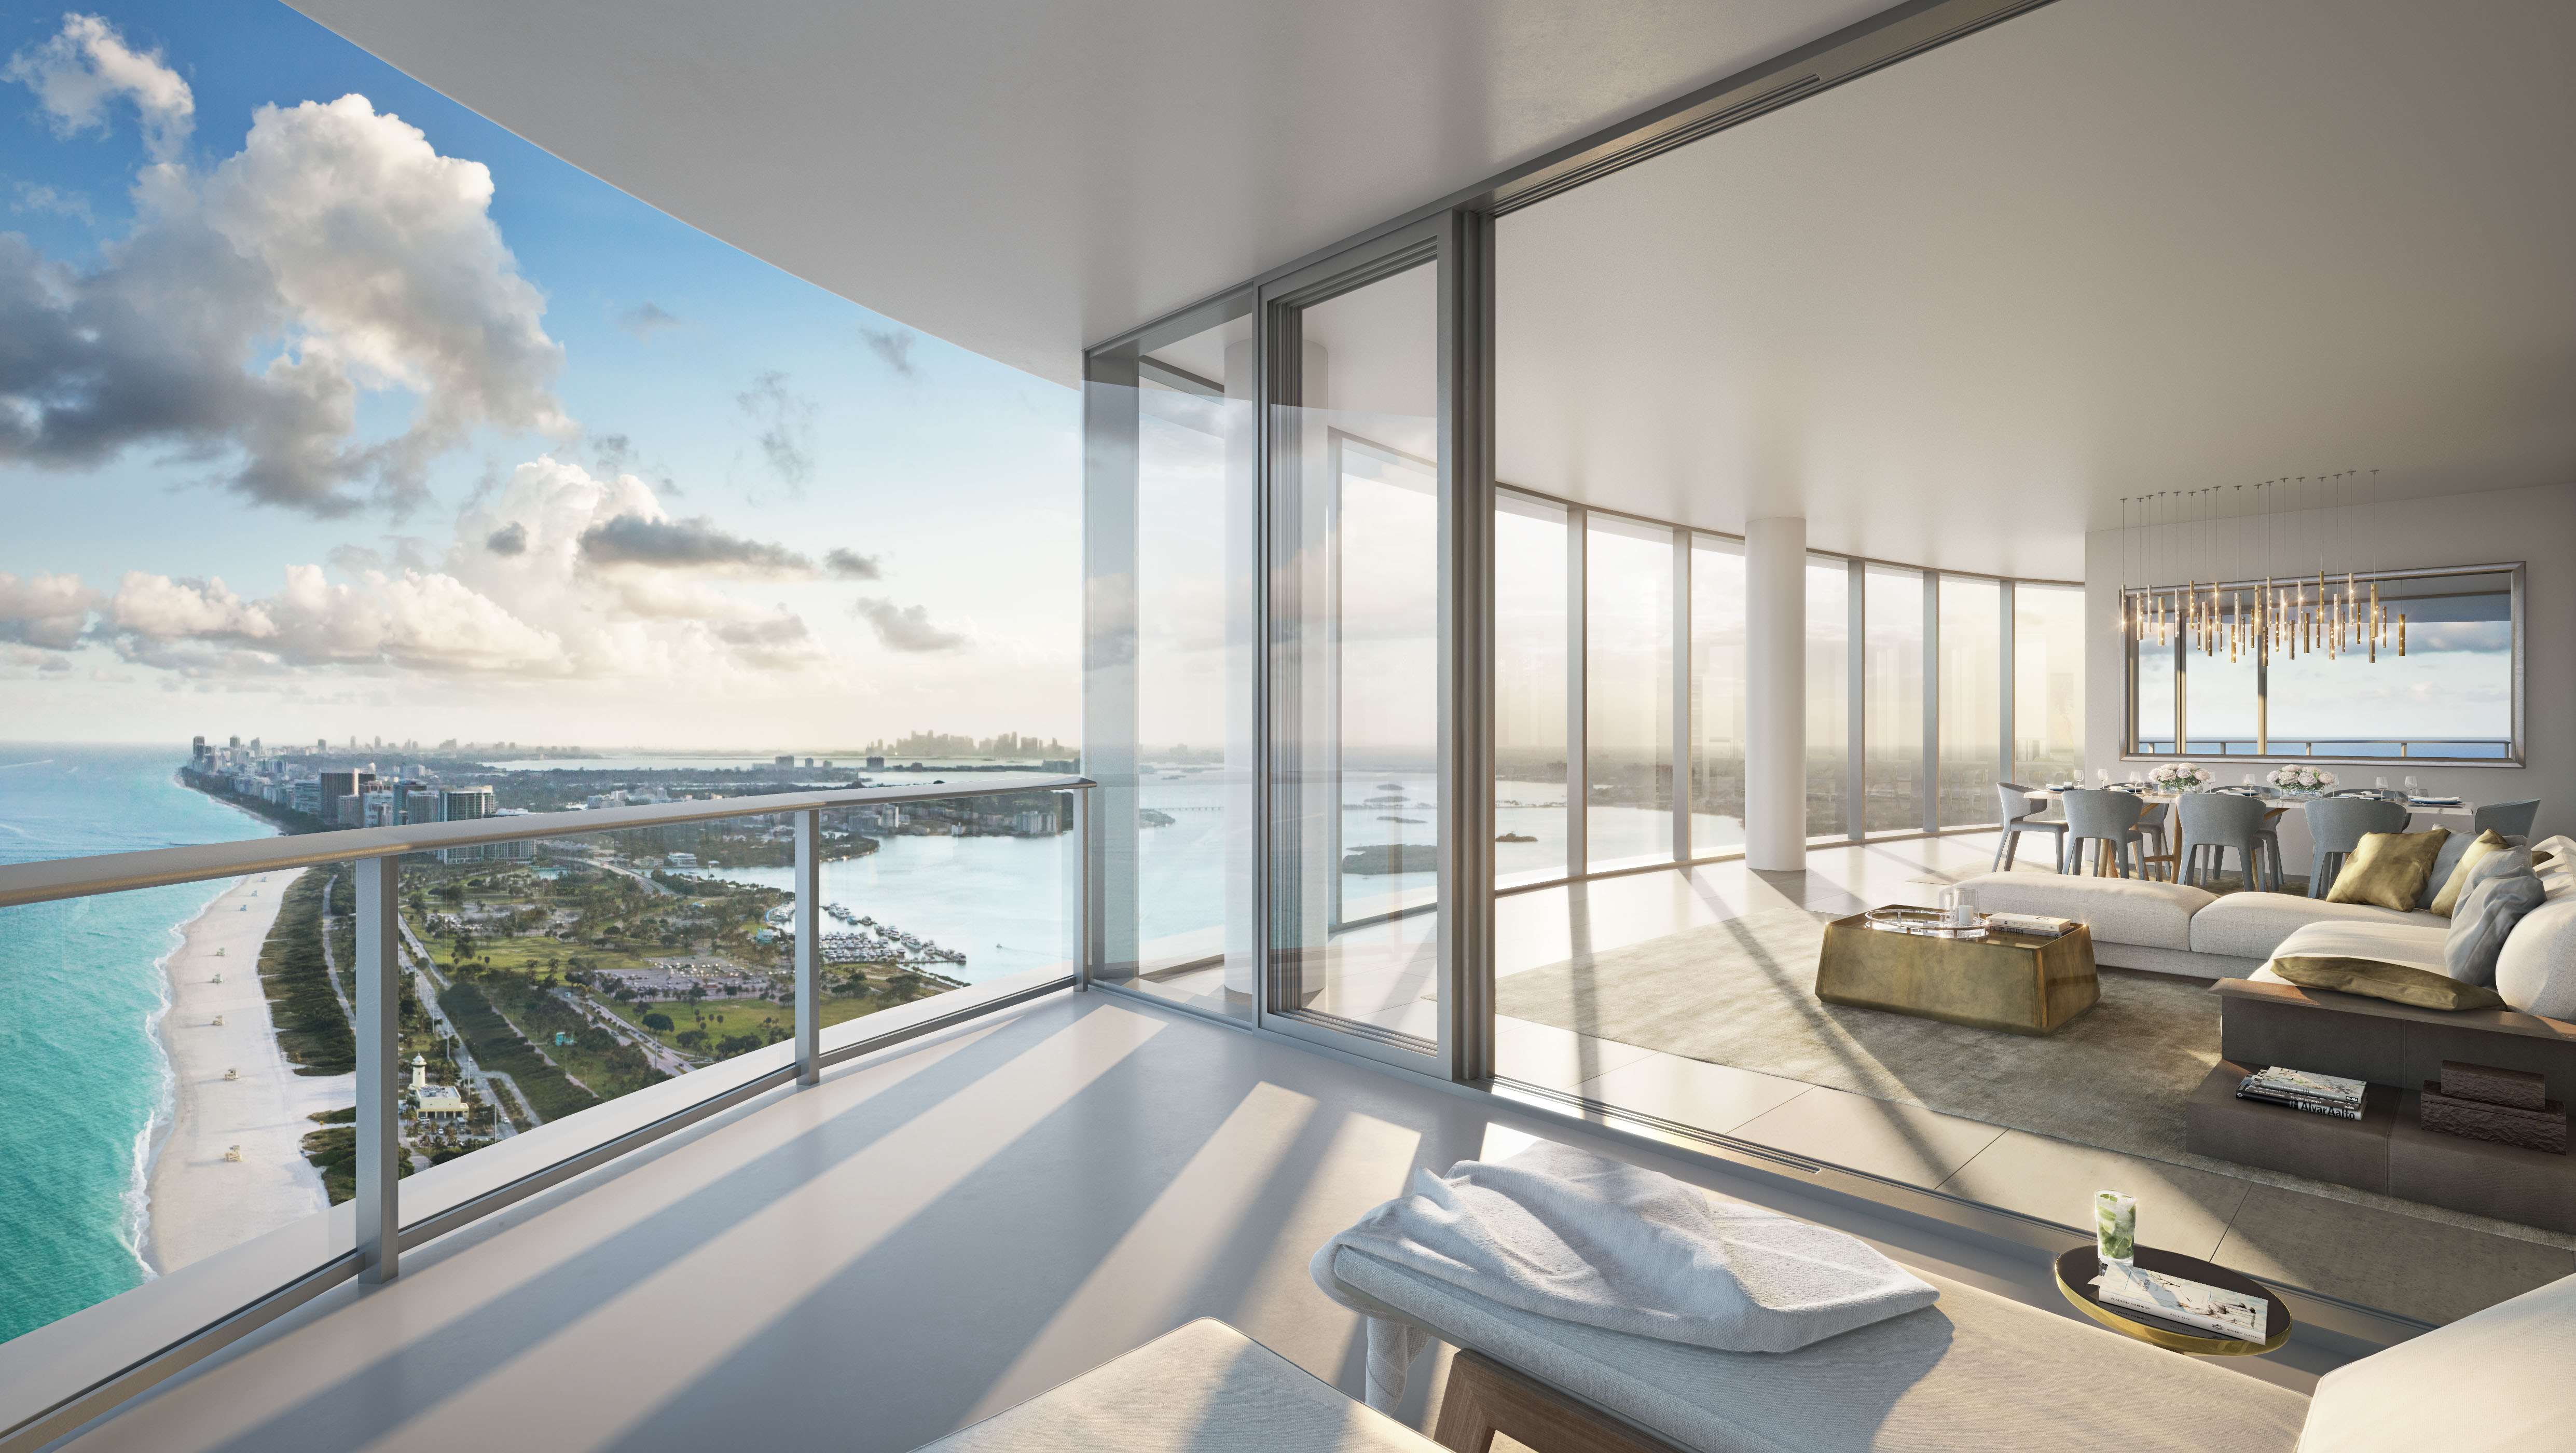 Genial ... Muse Residences, Estates At Acqualina, Turnberry Ocean Club, Residences  By Armani/Casa, And The Newly Finished Porsche Design Tower.